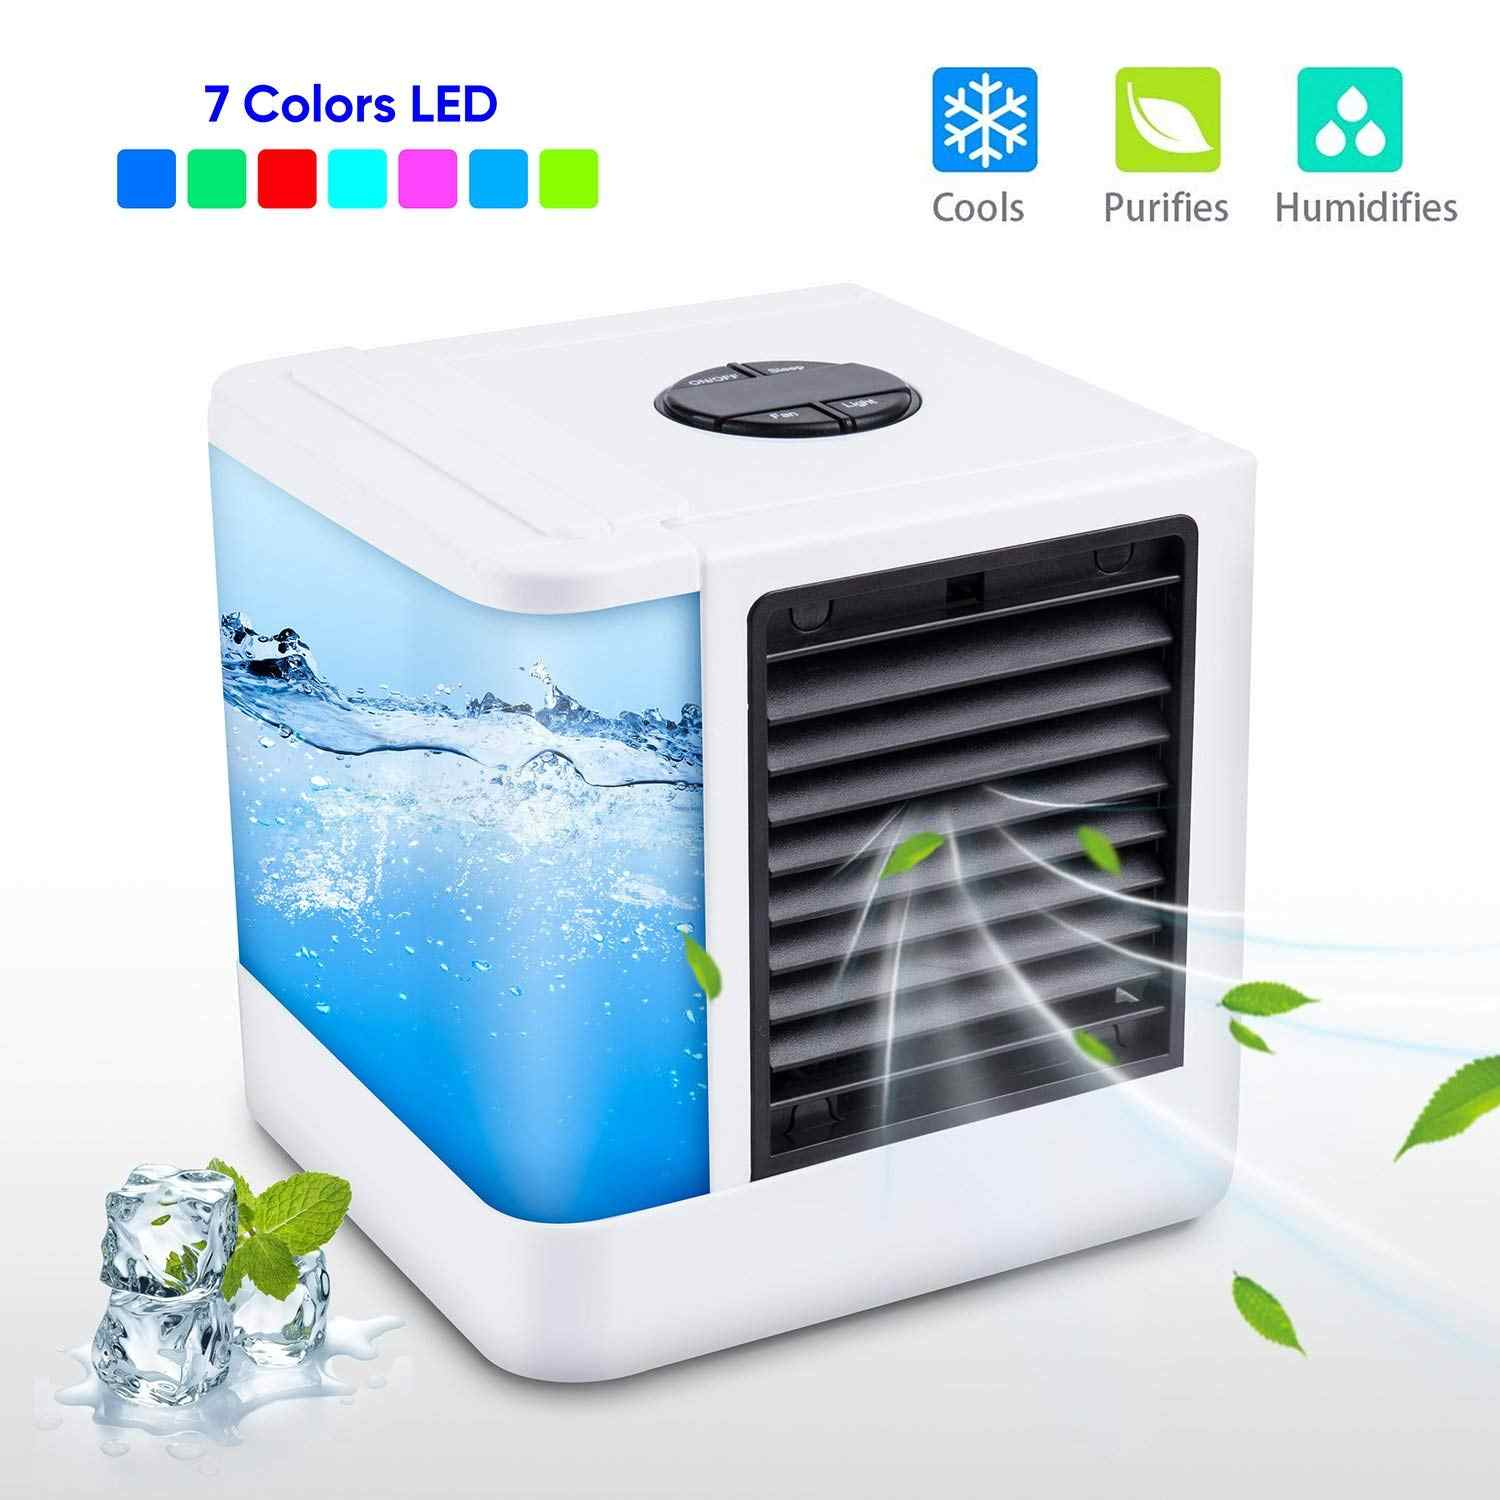 Mini Portable Air Conditioner Humidifier Purifier USB Air Cooler 7 Colors Light Desktop Air Cooling Cooler Fan For Home Office